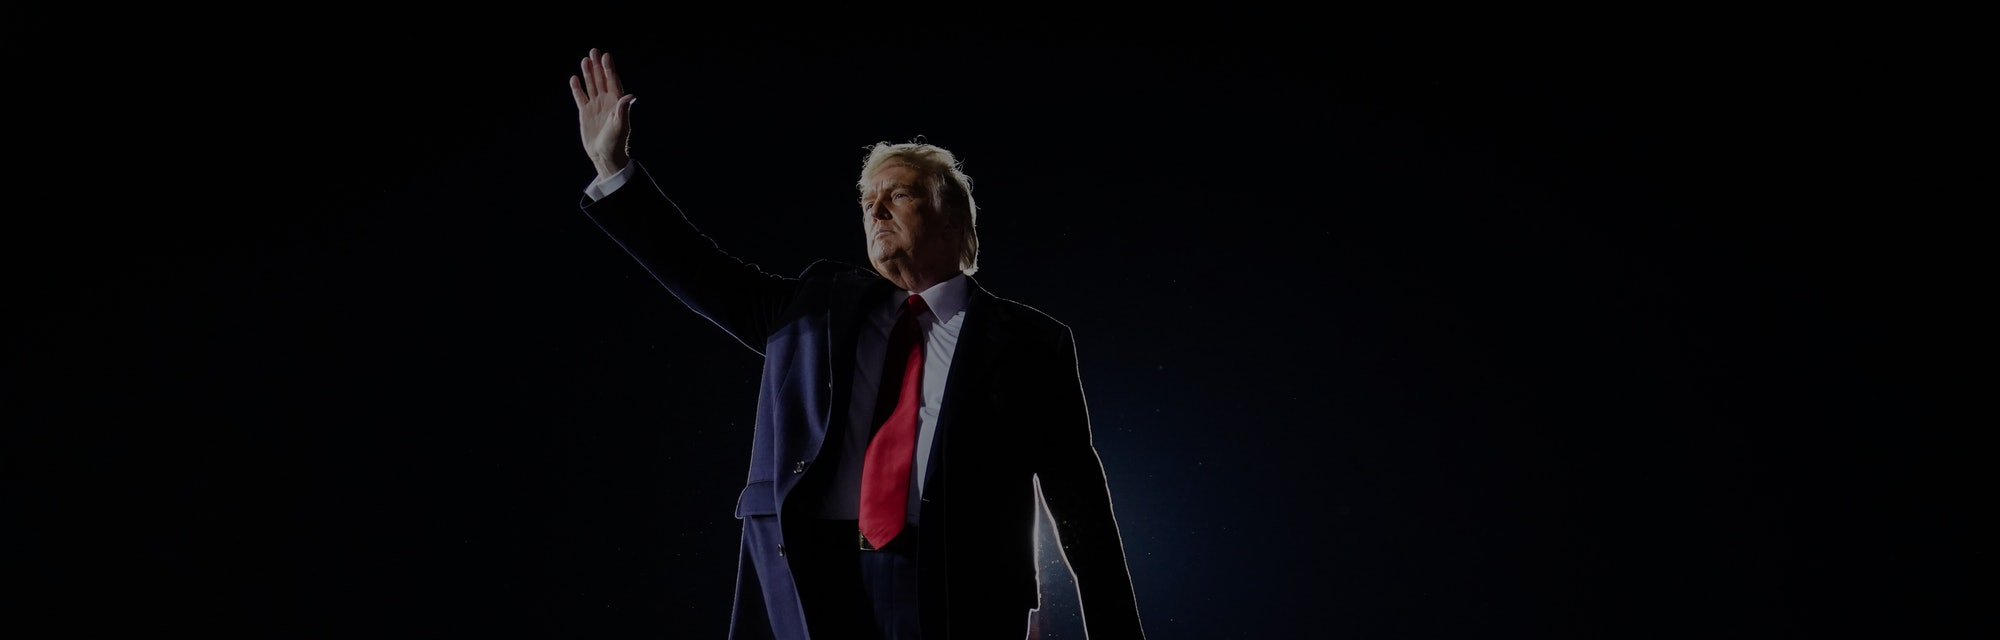 President Trump waving to supports at a campaign rally.